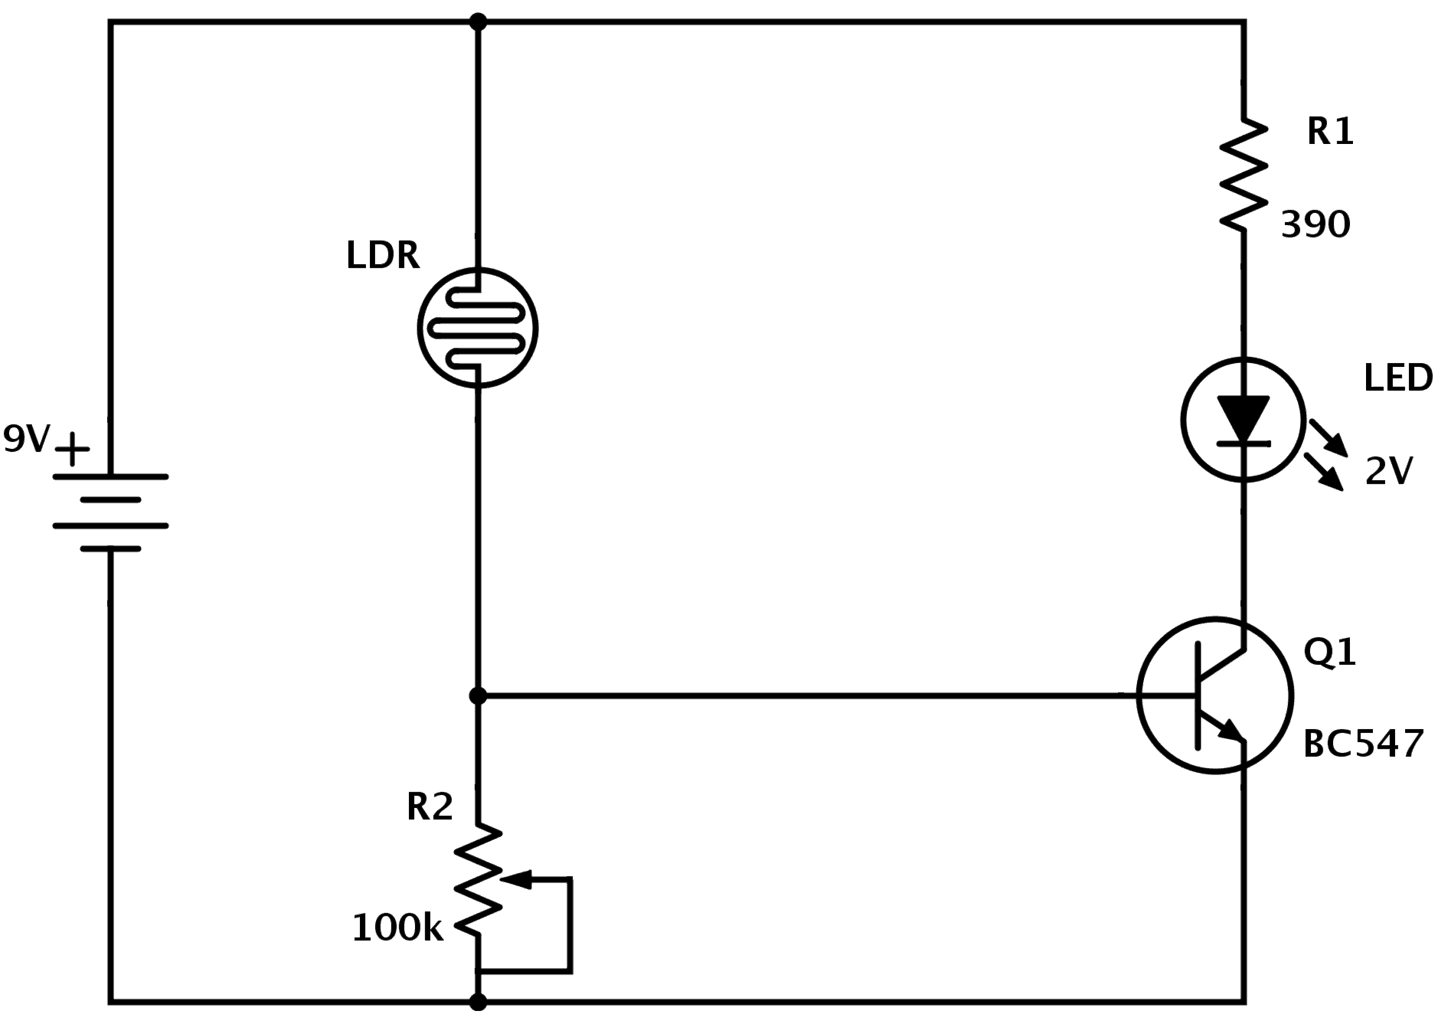 LDR circuit improved circuit diagram how to read and understand any schematic How to Draw a Wiring Diagram ECE at suagrazia.org